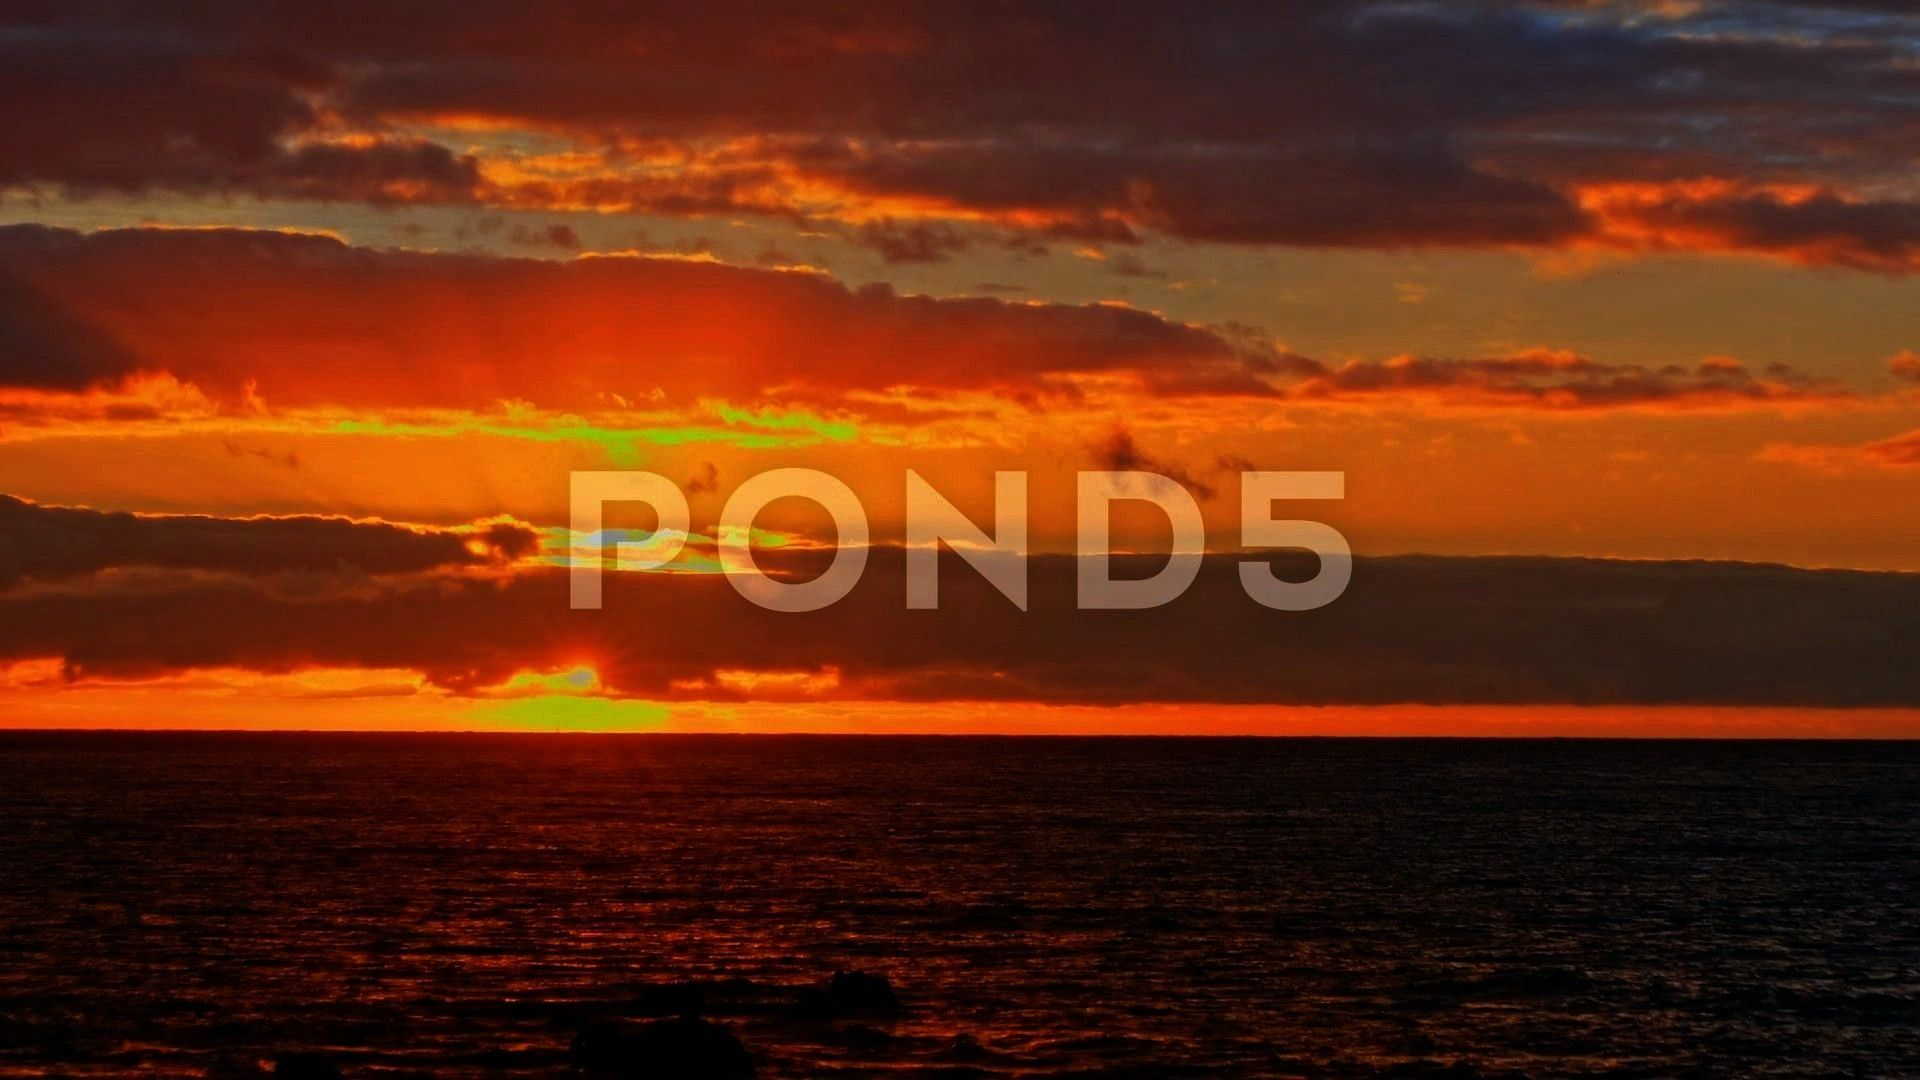 sunset dawn on the ocean The sun rises from beyond Stock Footage sunsetdawndramaticColorfulColorful bright dramatic sunset dawn on the ocean The sun rises from beyond Sto...